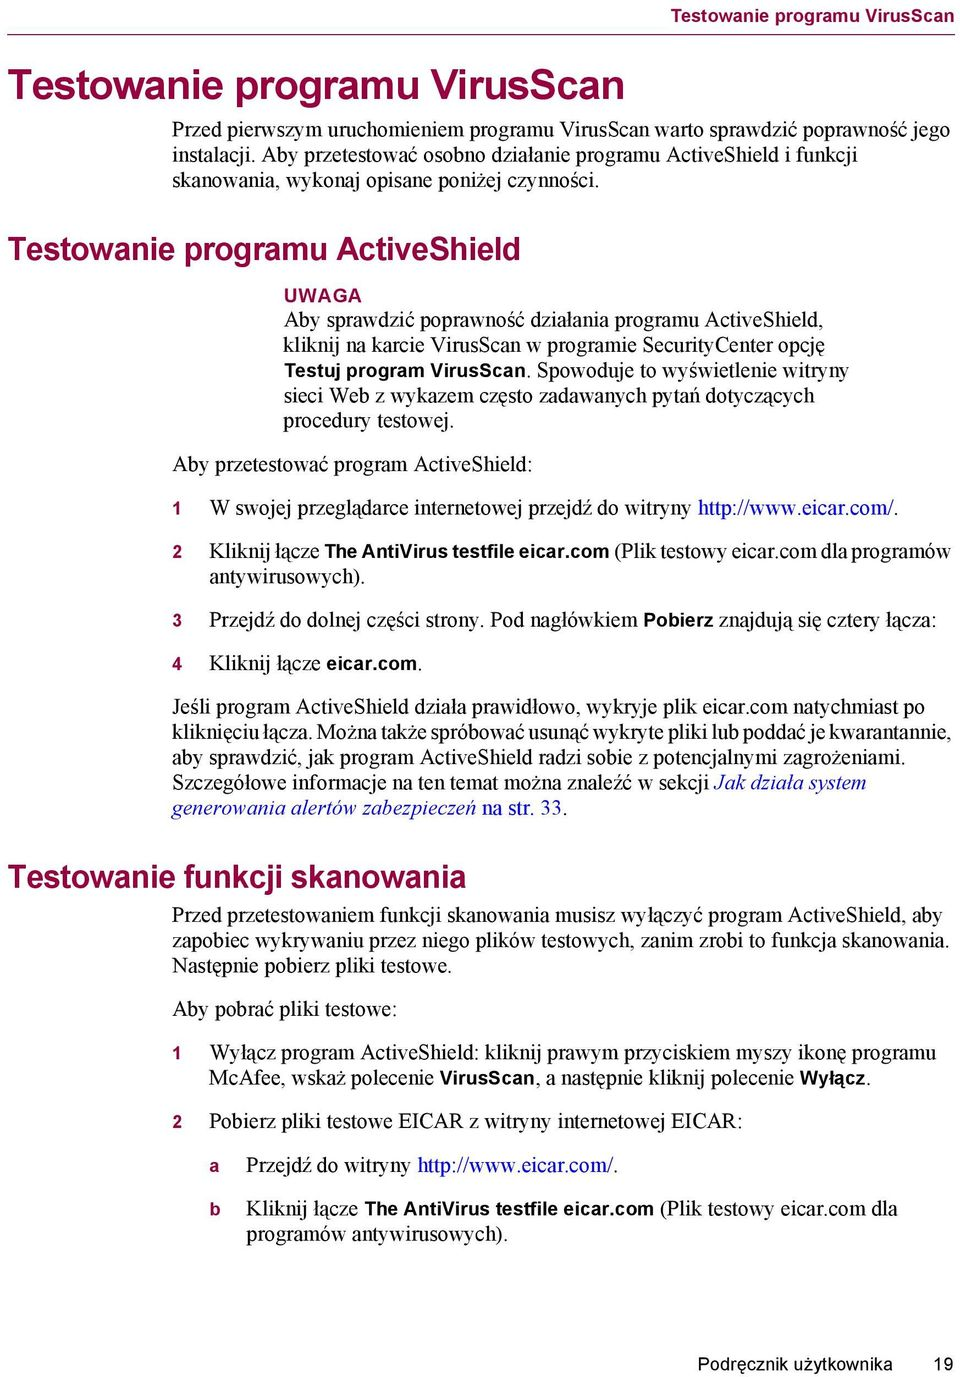 Testowanie programu ActiveShield UWAGA Aby sprawdzić poprawność działania programu ActiveShield, kliknij na karcie VirusScan w programie SecurityCenter opcję Testuj program VirusScan.